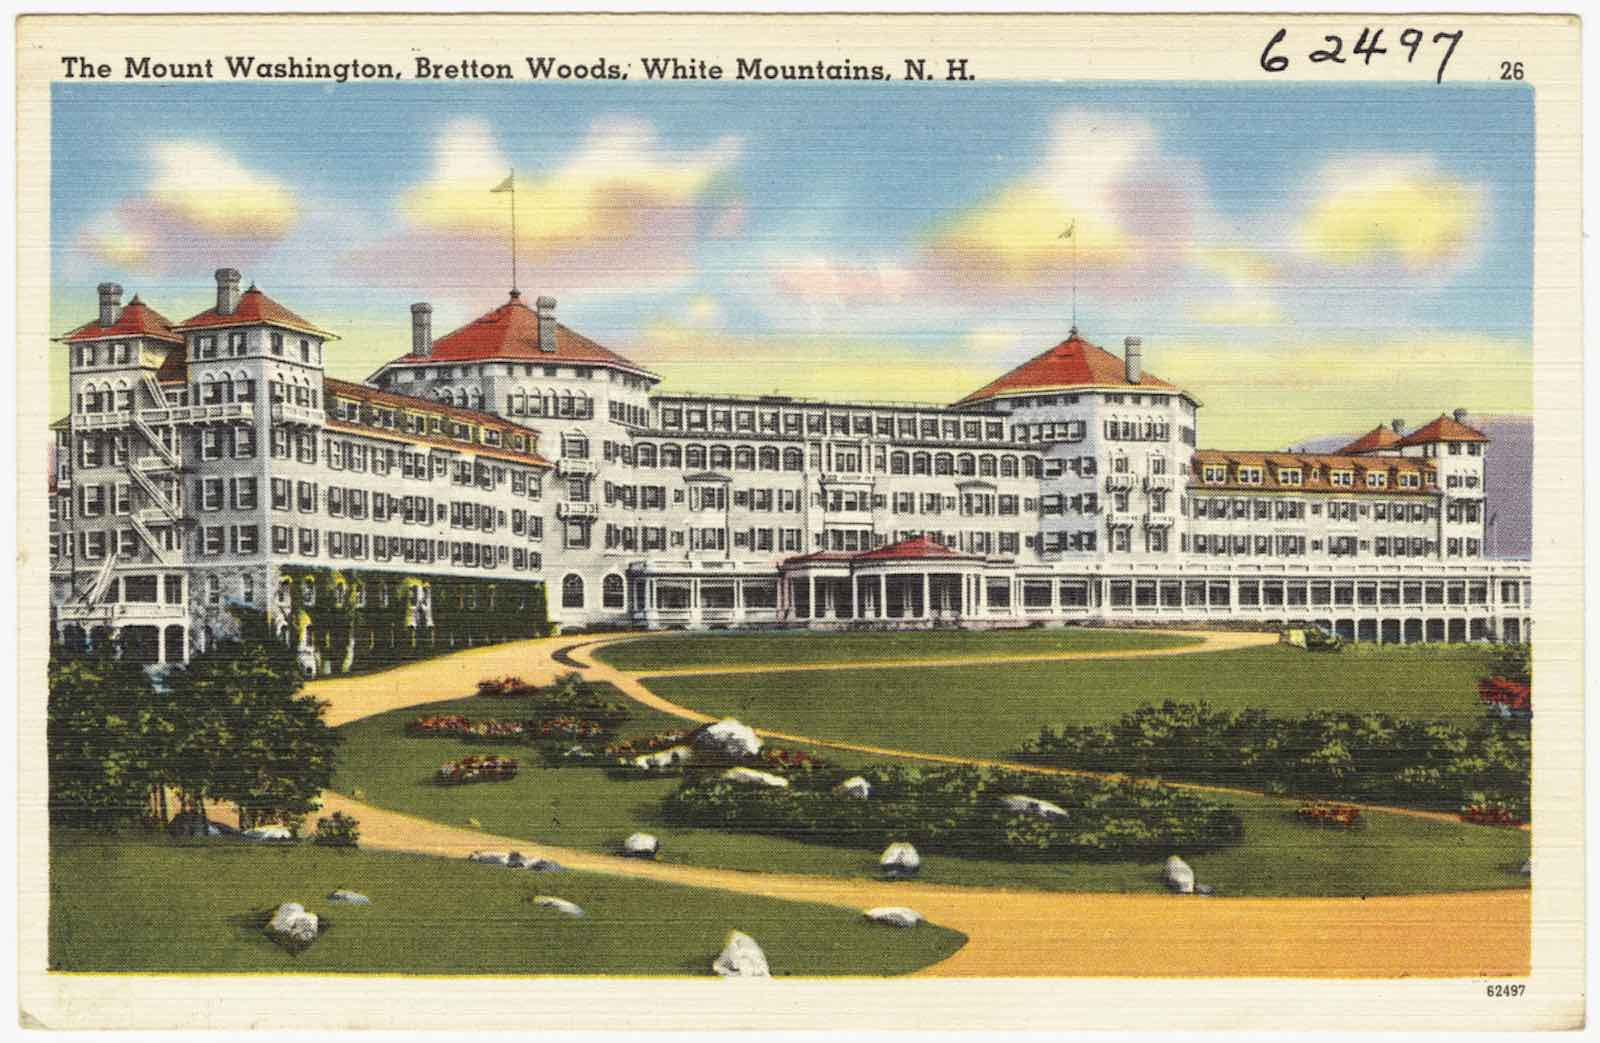 Mount Washington Hotel in Bretton Woods, New Hampshire, USA (Boston Public Library/Flickr)